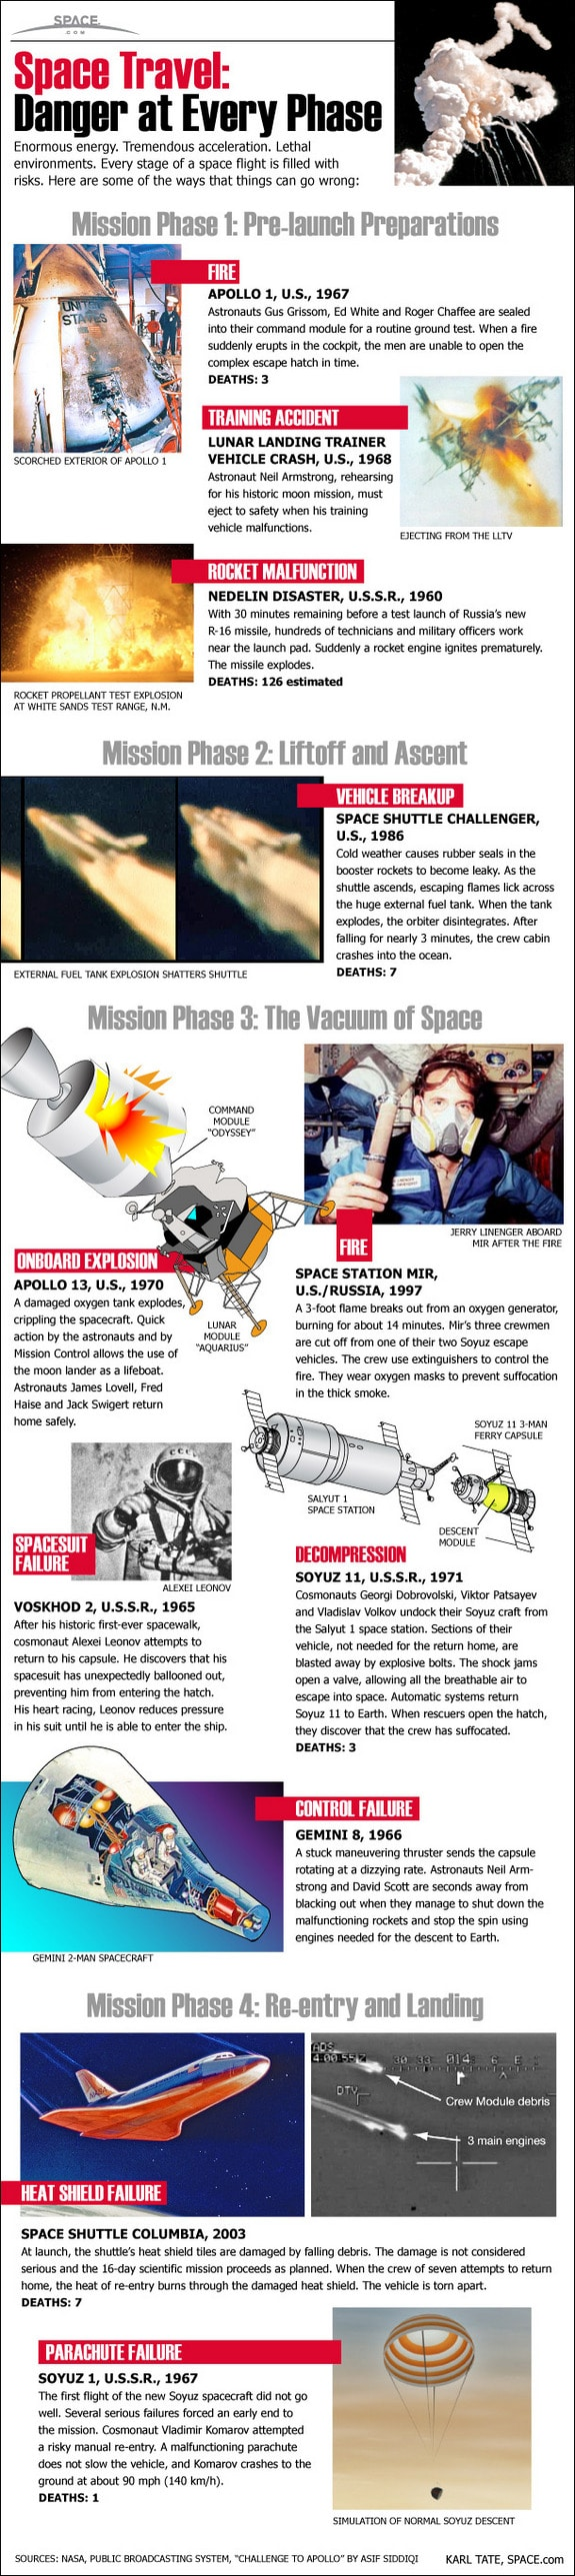 Space travel mission failures